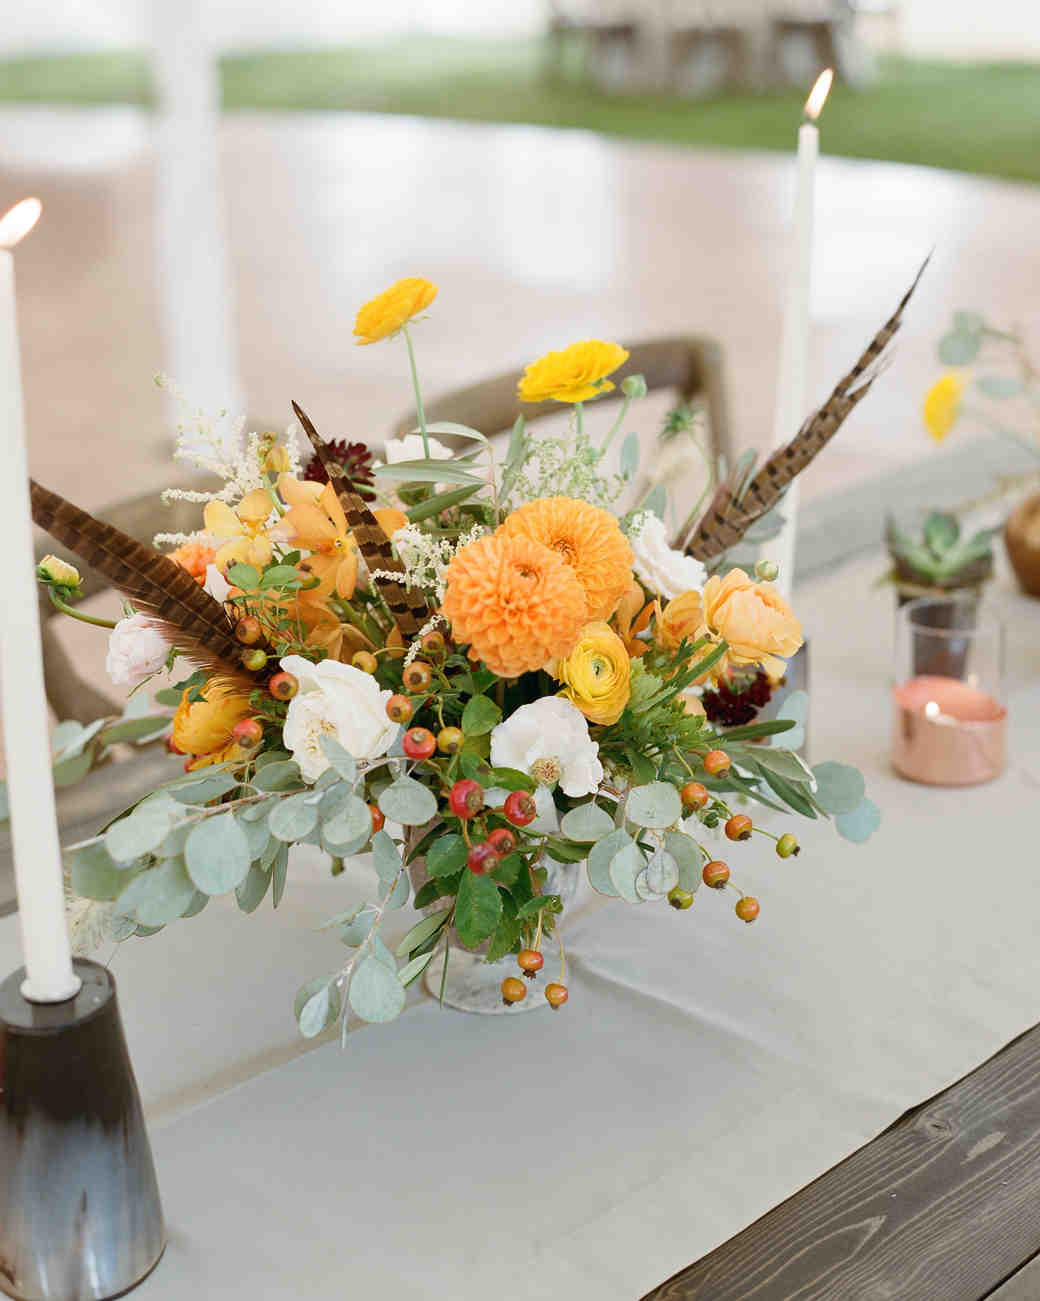 Wedding centerpiece